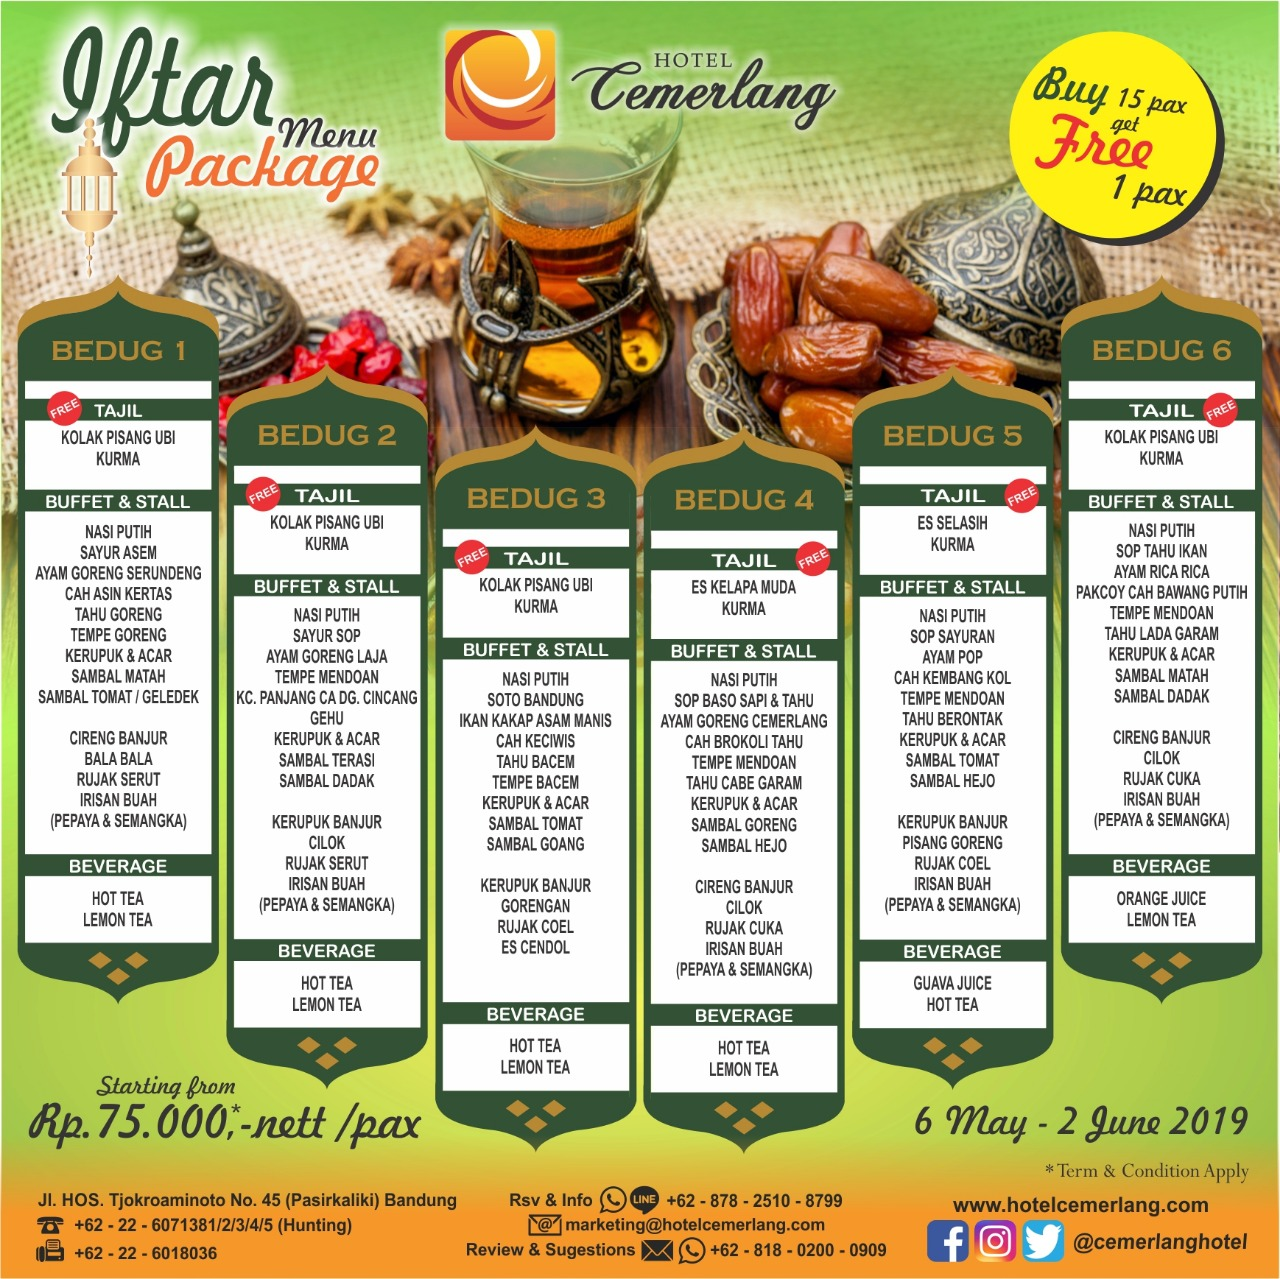 Buka Puasa/Iftar Package 2019